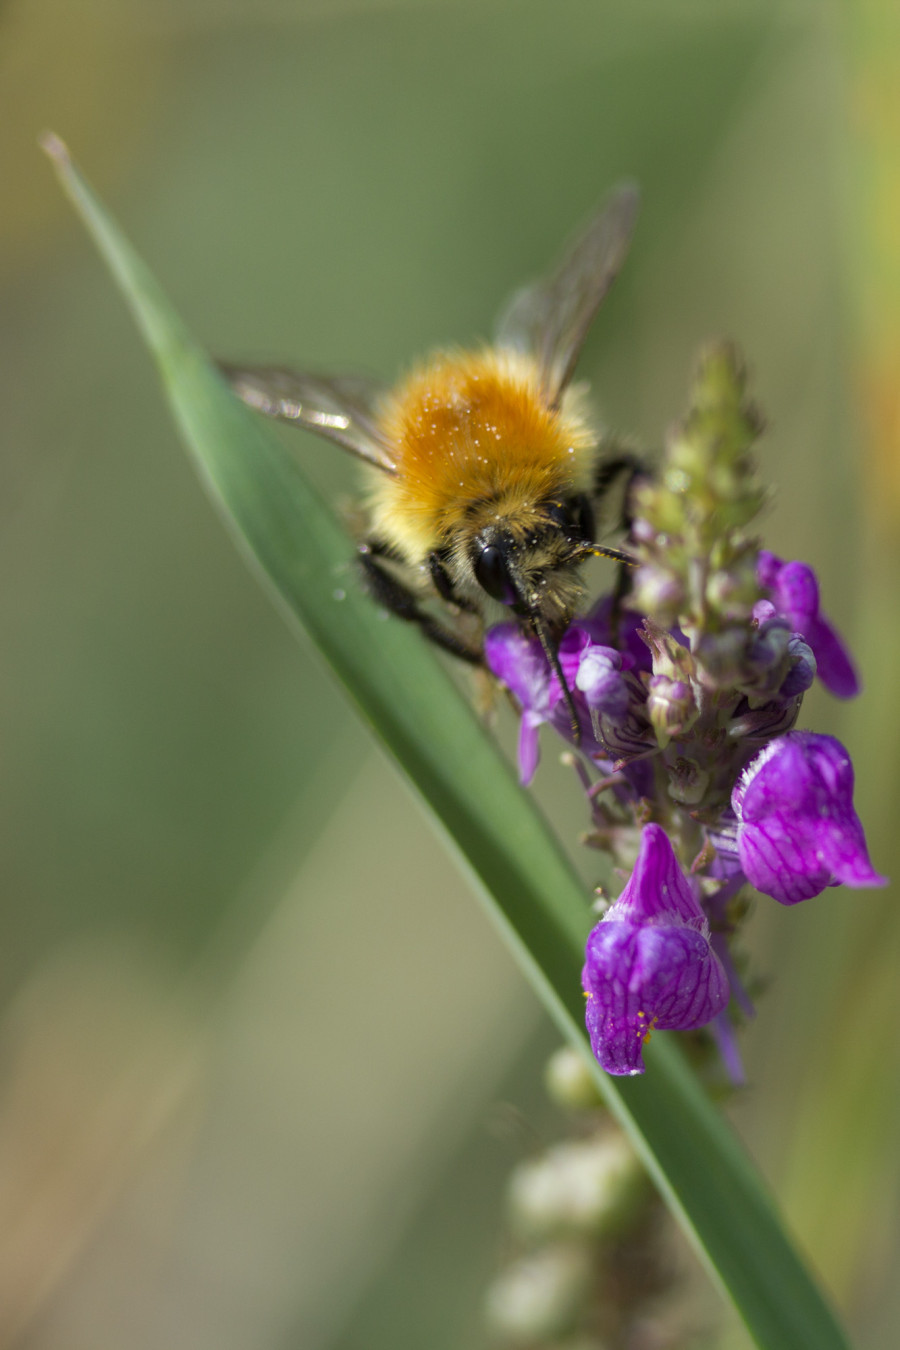 Keep an eye our for many bumblebee species that live and breed at Mudchute.